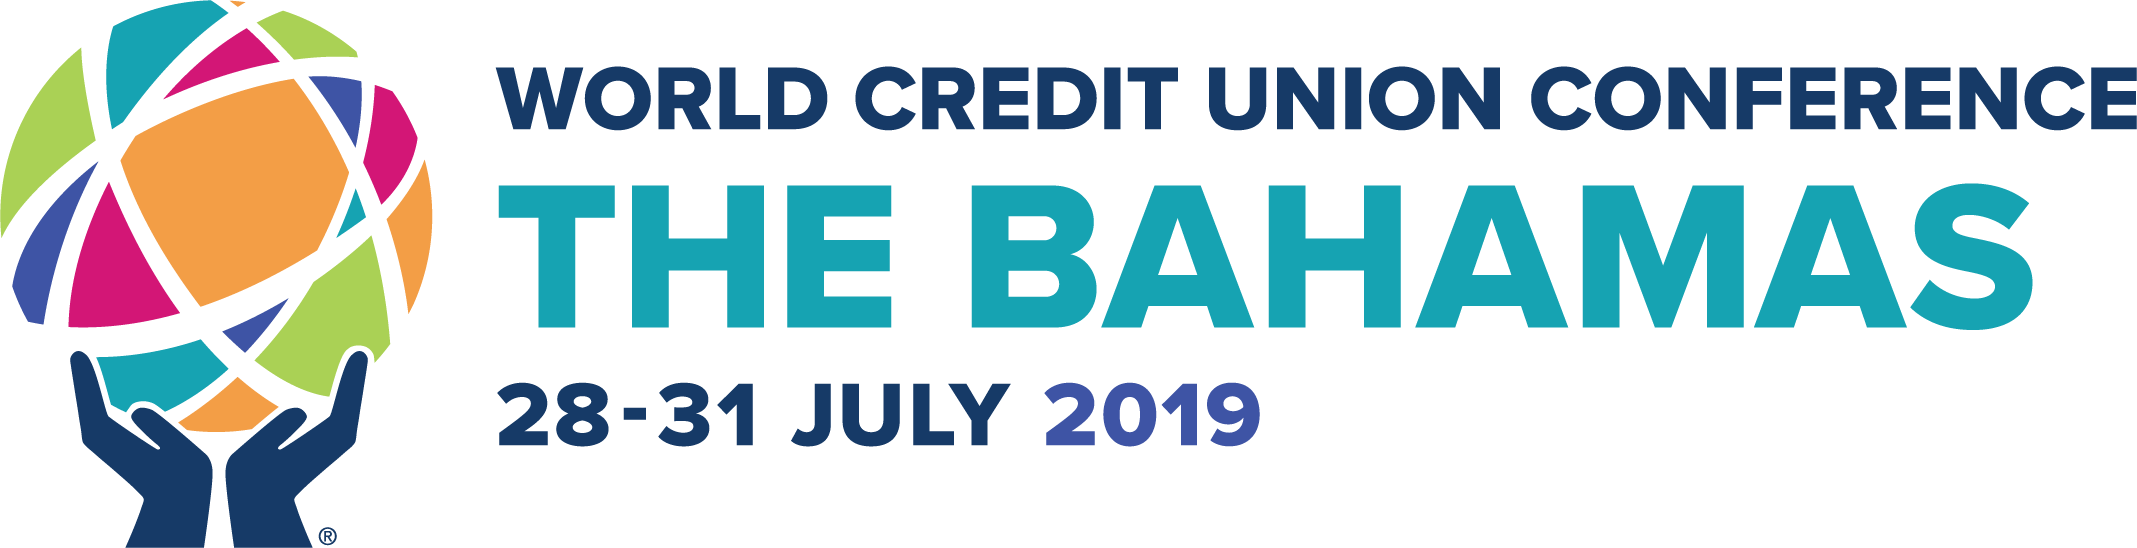 2019 World Credit Union Conference